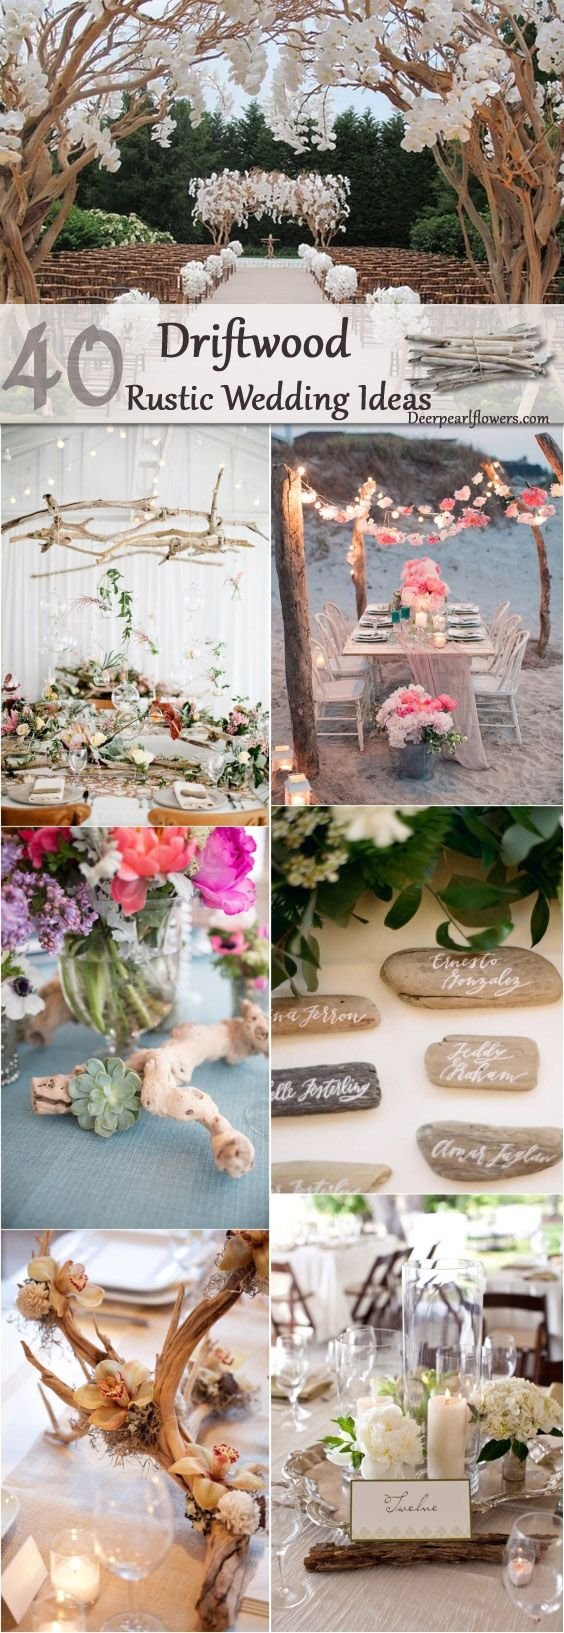 rustic driftwood wedding idea / http://www.deerpearlflowers.com/driftwood-wedding-decor-ideas/